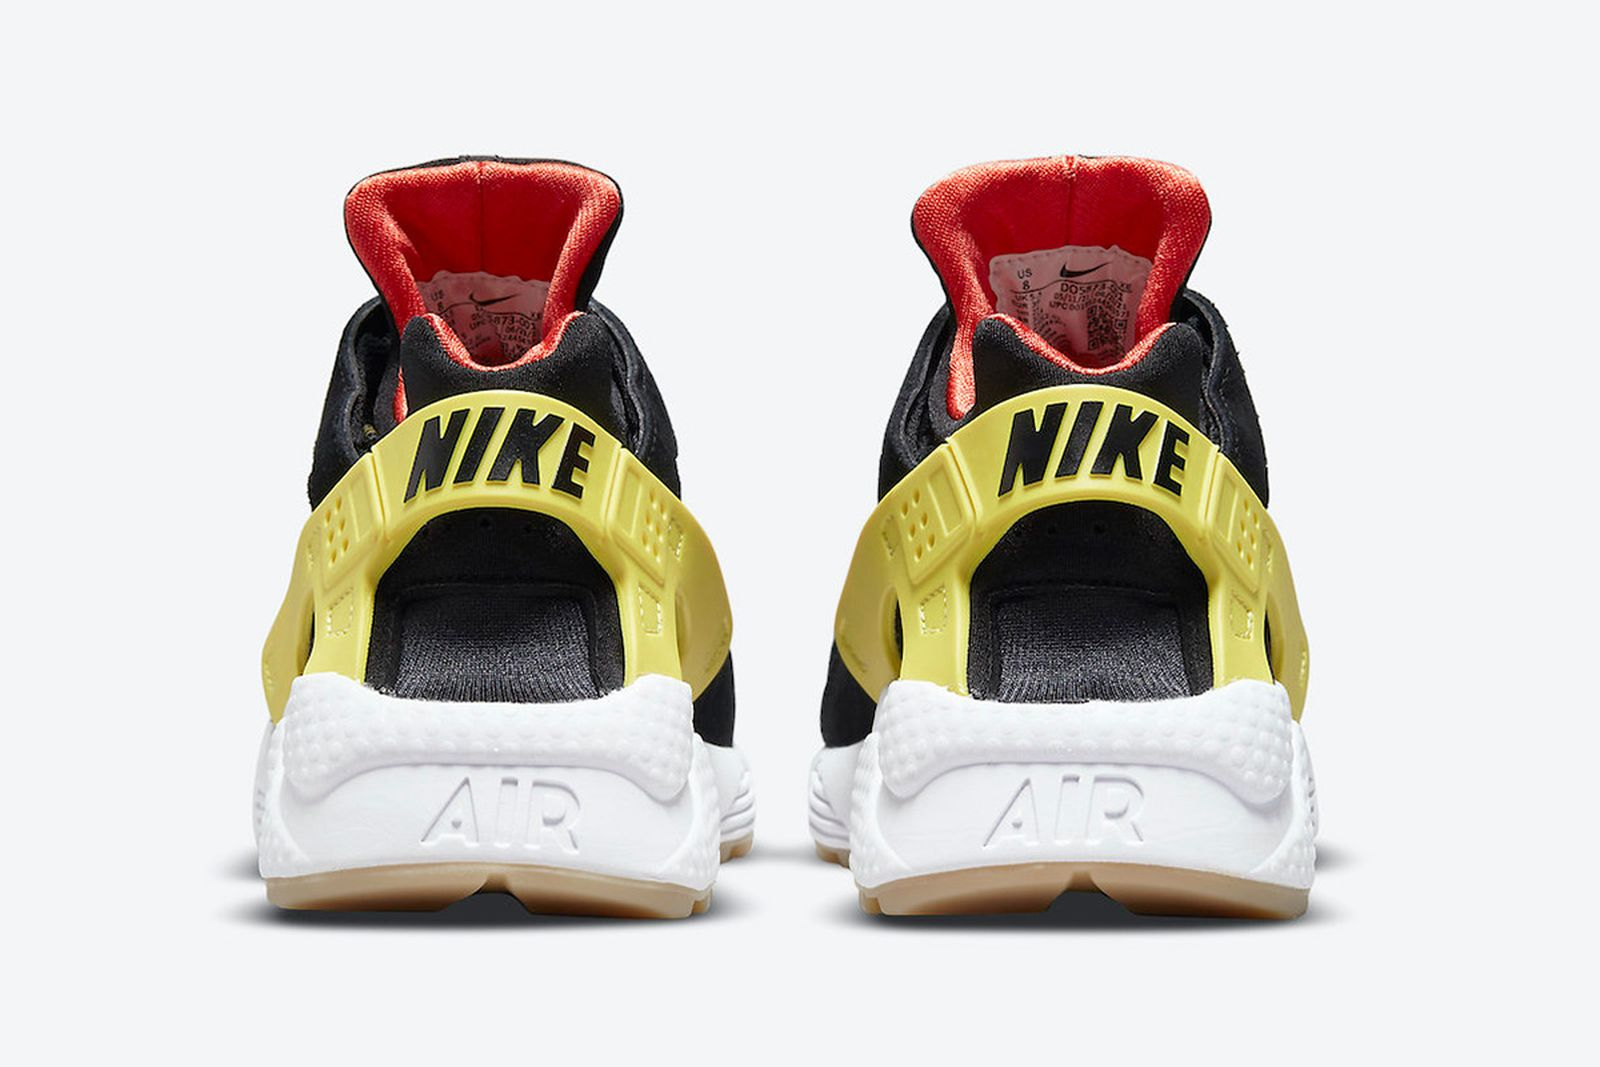 nike-go-the-extra-smile-pack-release-info-07